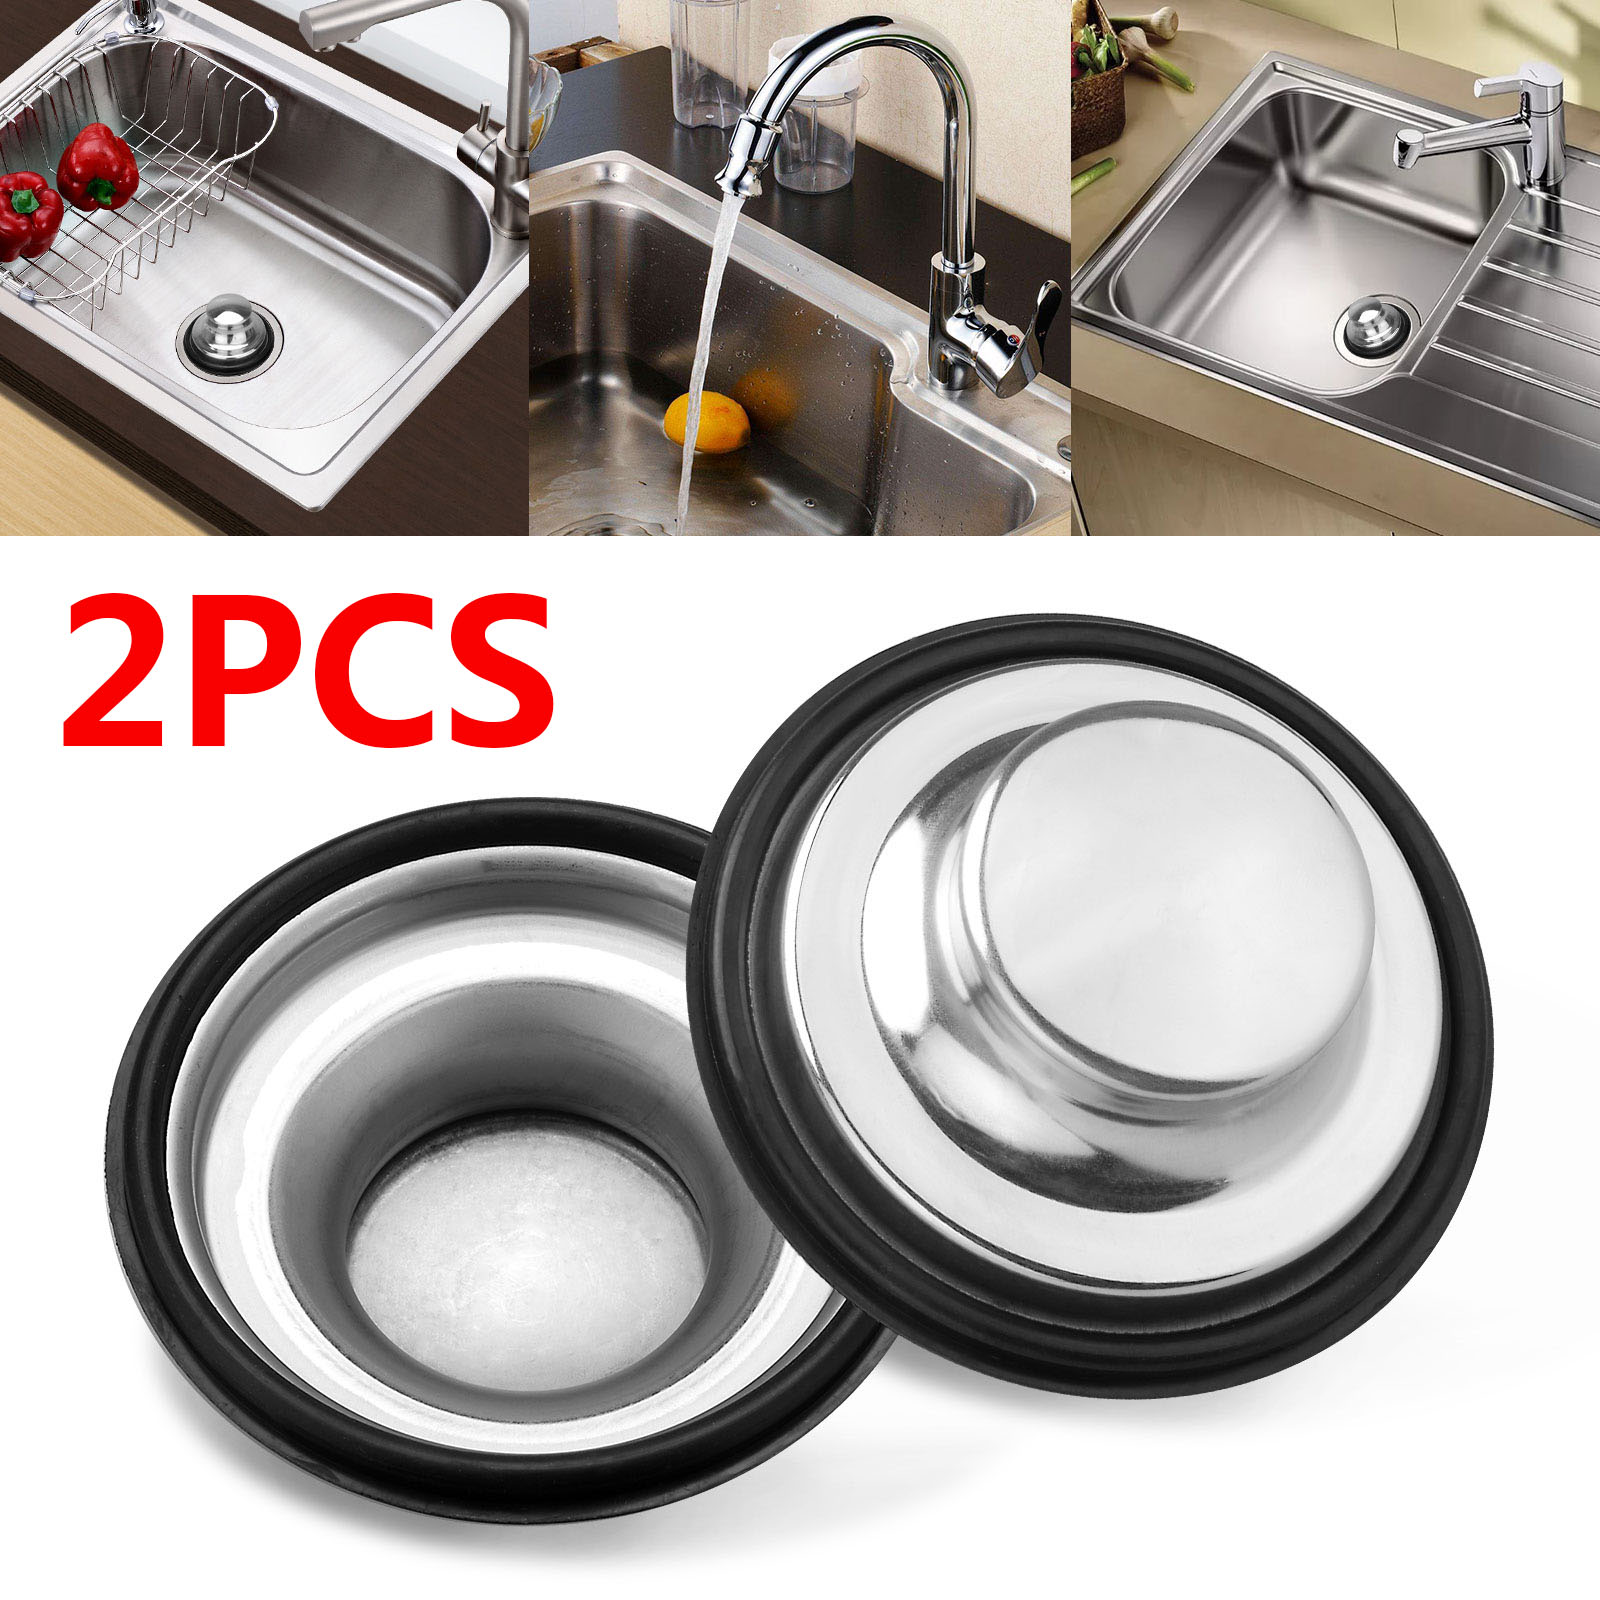 Kitchen Sink Stopper 2pcs Anti Clogging Stainless Steel Sink Disposal Stopper Or 1 2pcs Sink Stopper Stainless Steel Cover Perforated Basket Drain Filter Sieve Or Keep Water For Kitchen Sink Drain Walmart Com